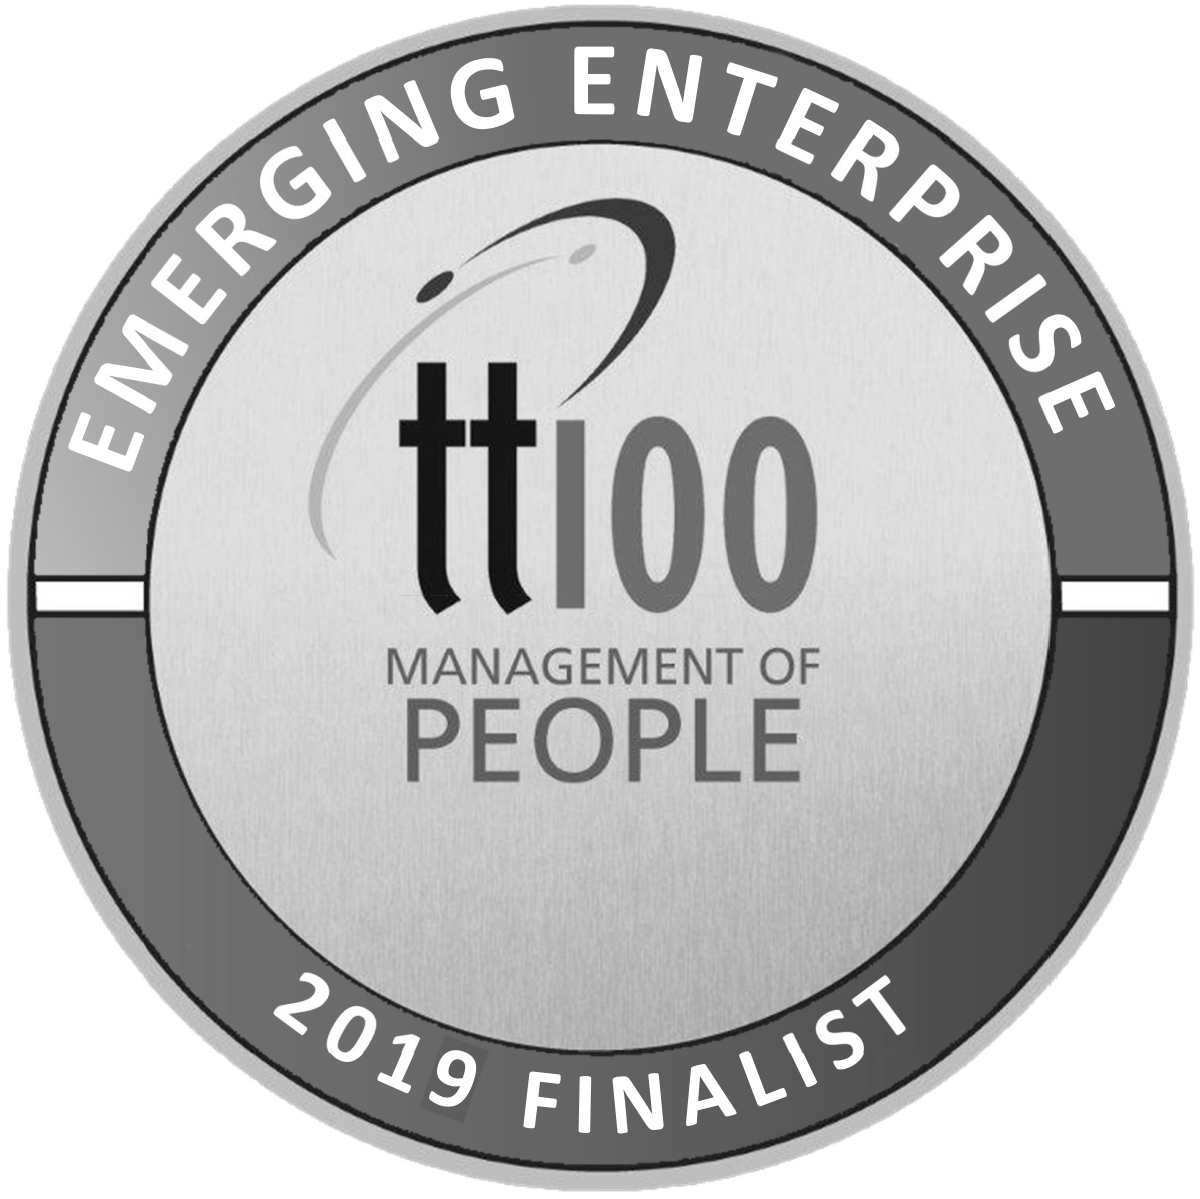 tt100-seal-management-of-people-01